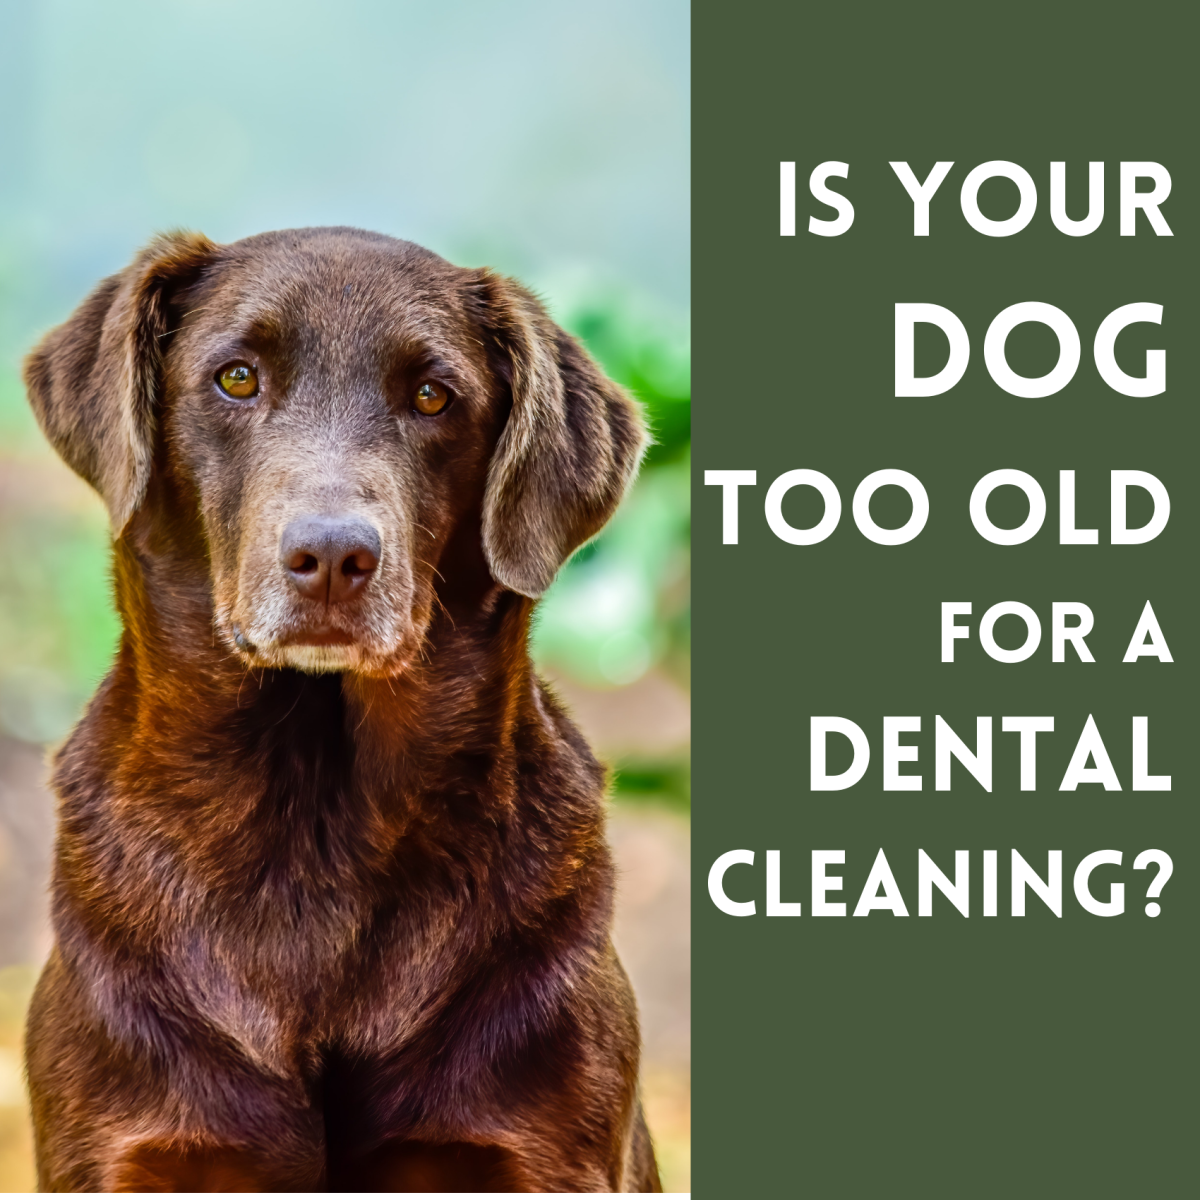 Is my dog too old for a dental cleaning? What are the risks?